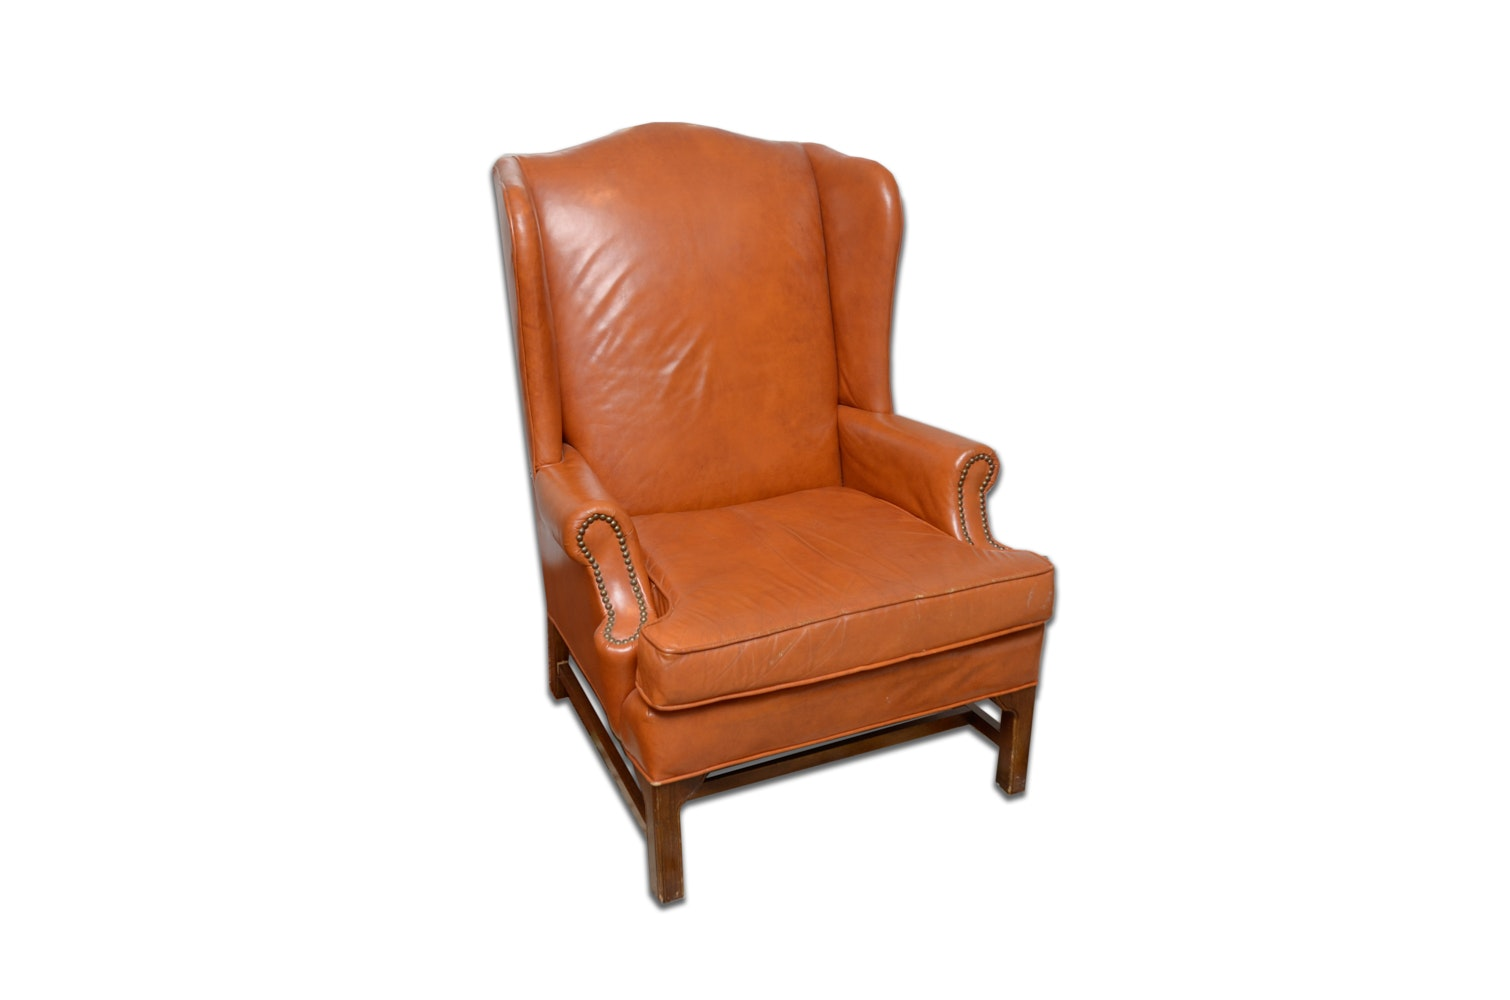 Chippendale Style Wingback Chair by Fairfield